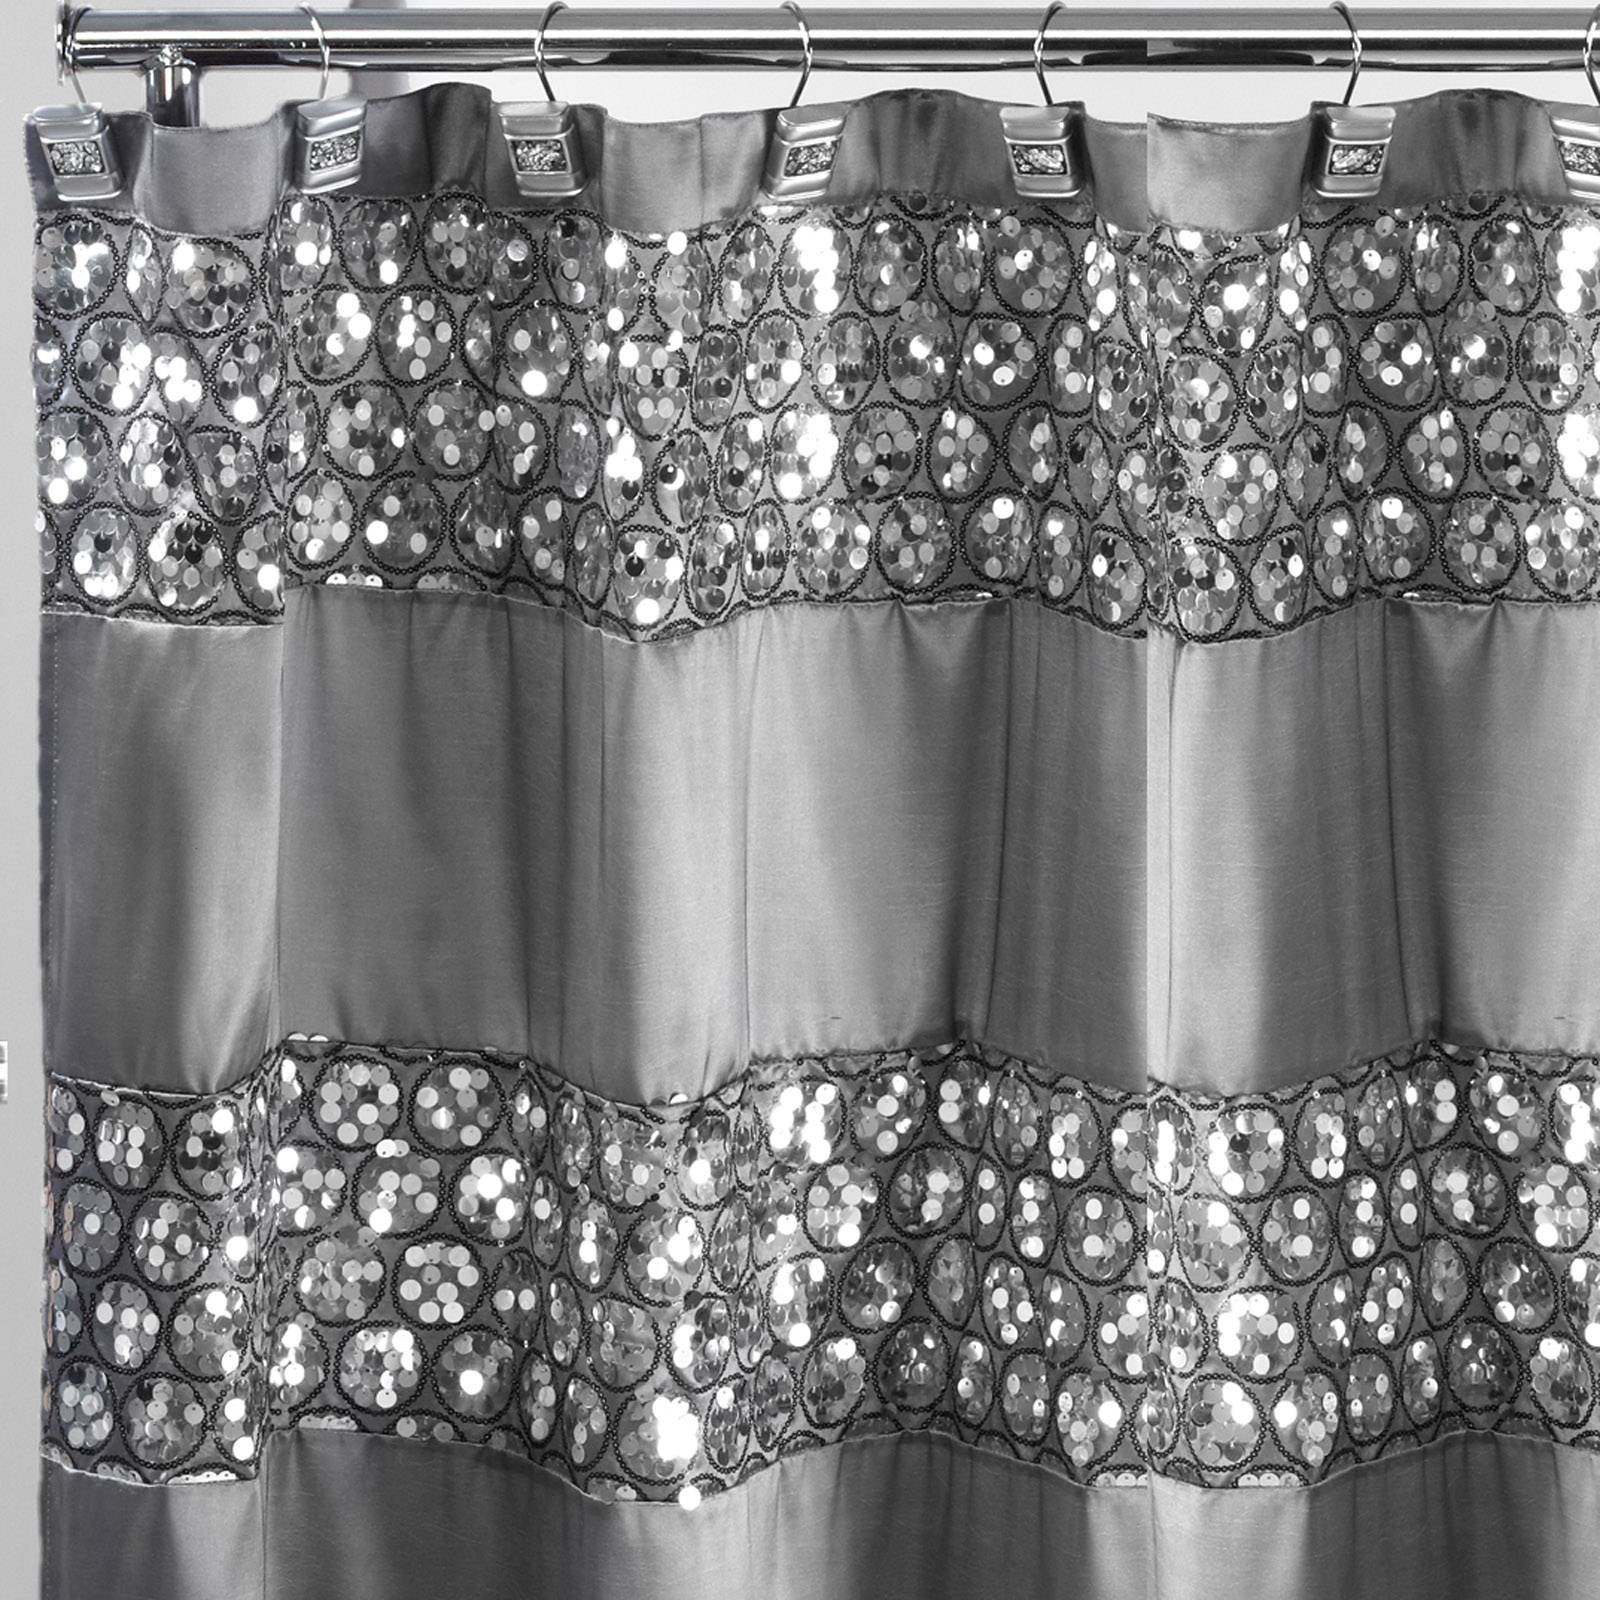 Popular Bath Sinatra Silver Collection 70 x 72 Bathroom Fabric Shower Curtain & Hook Set